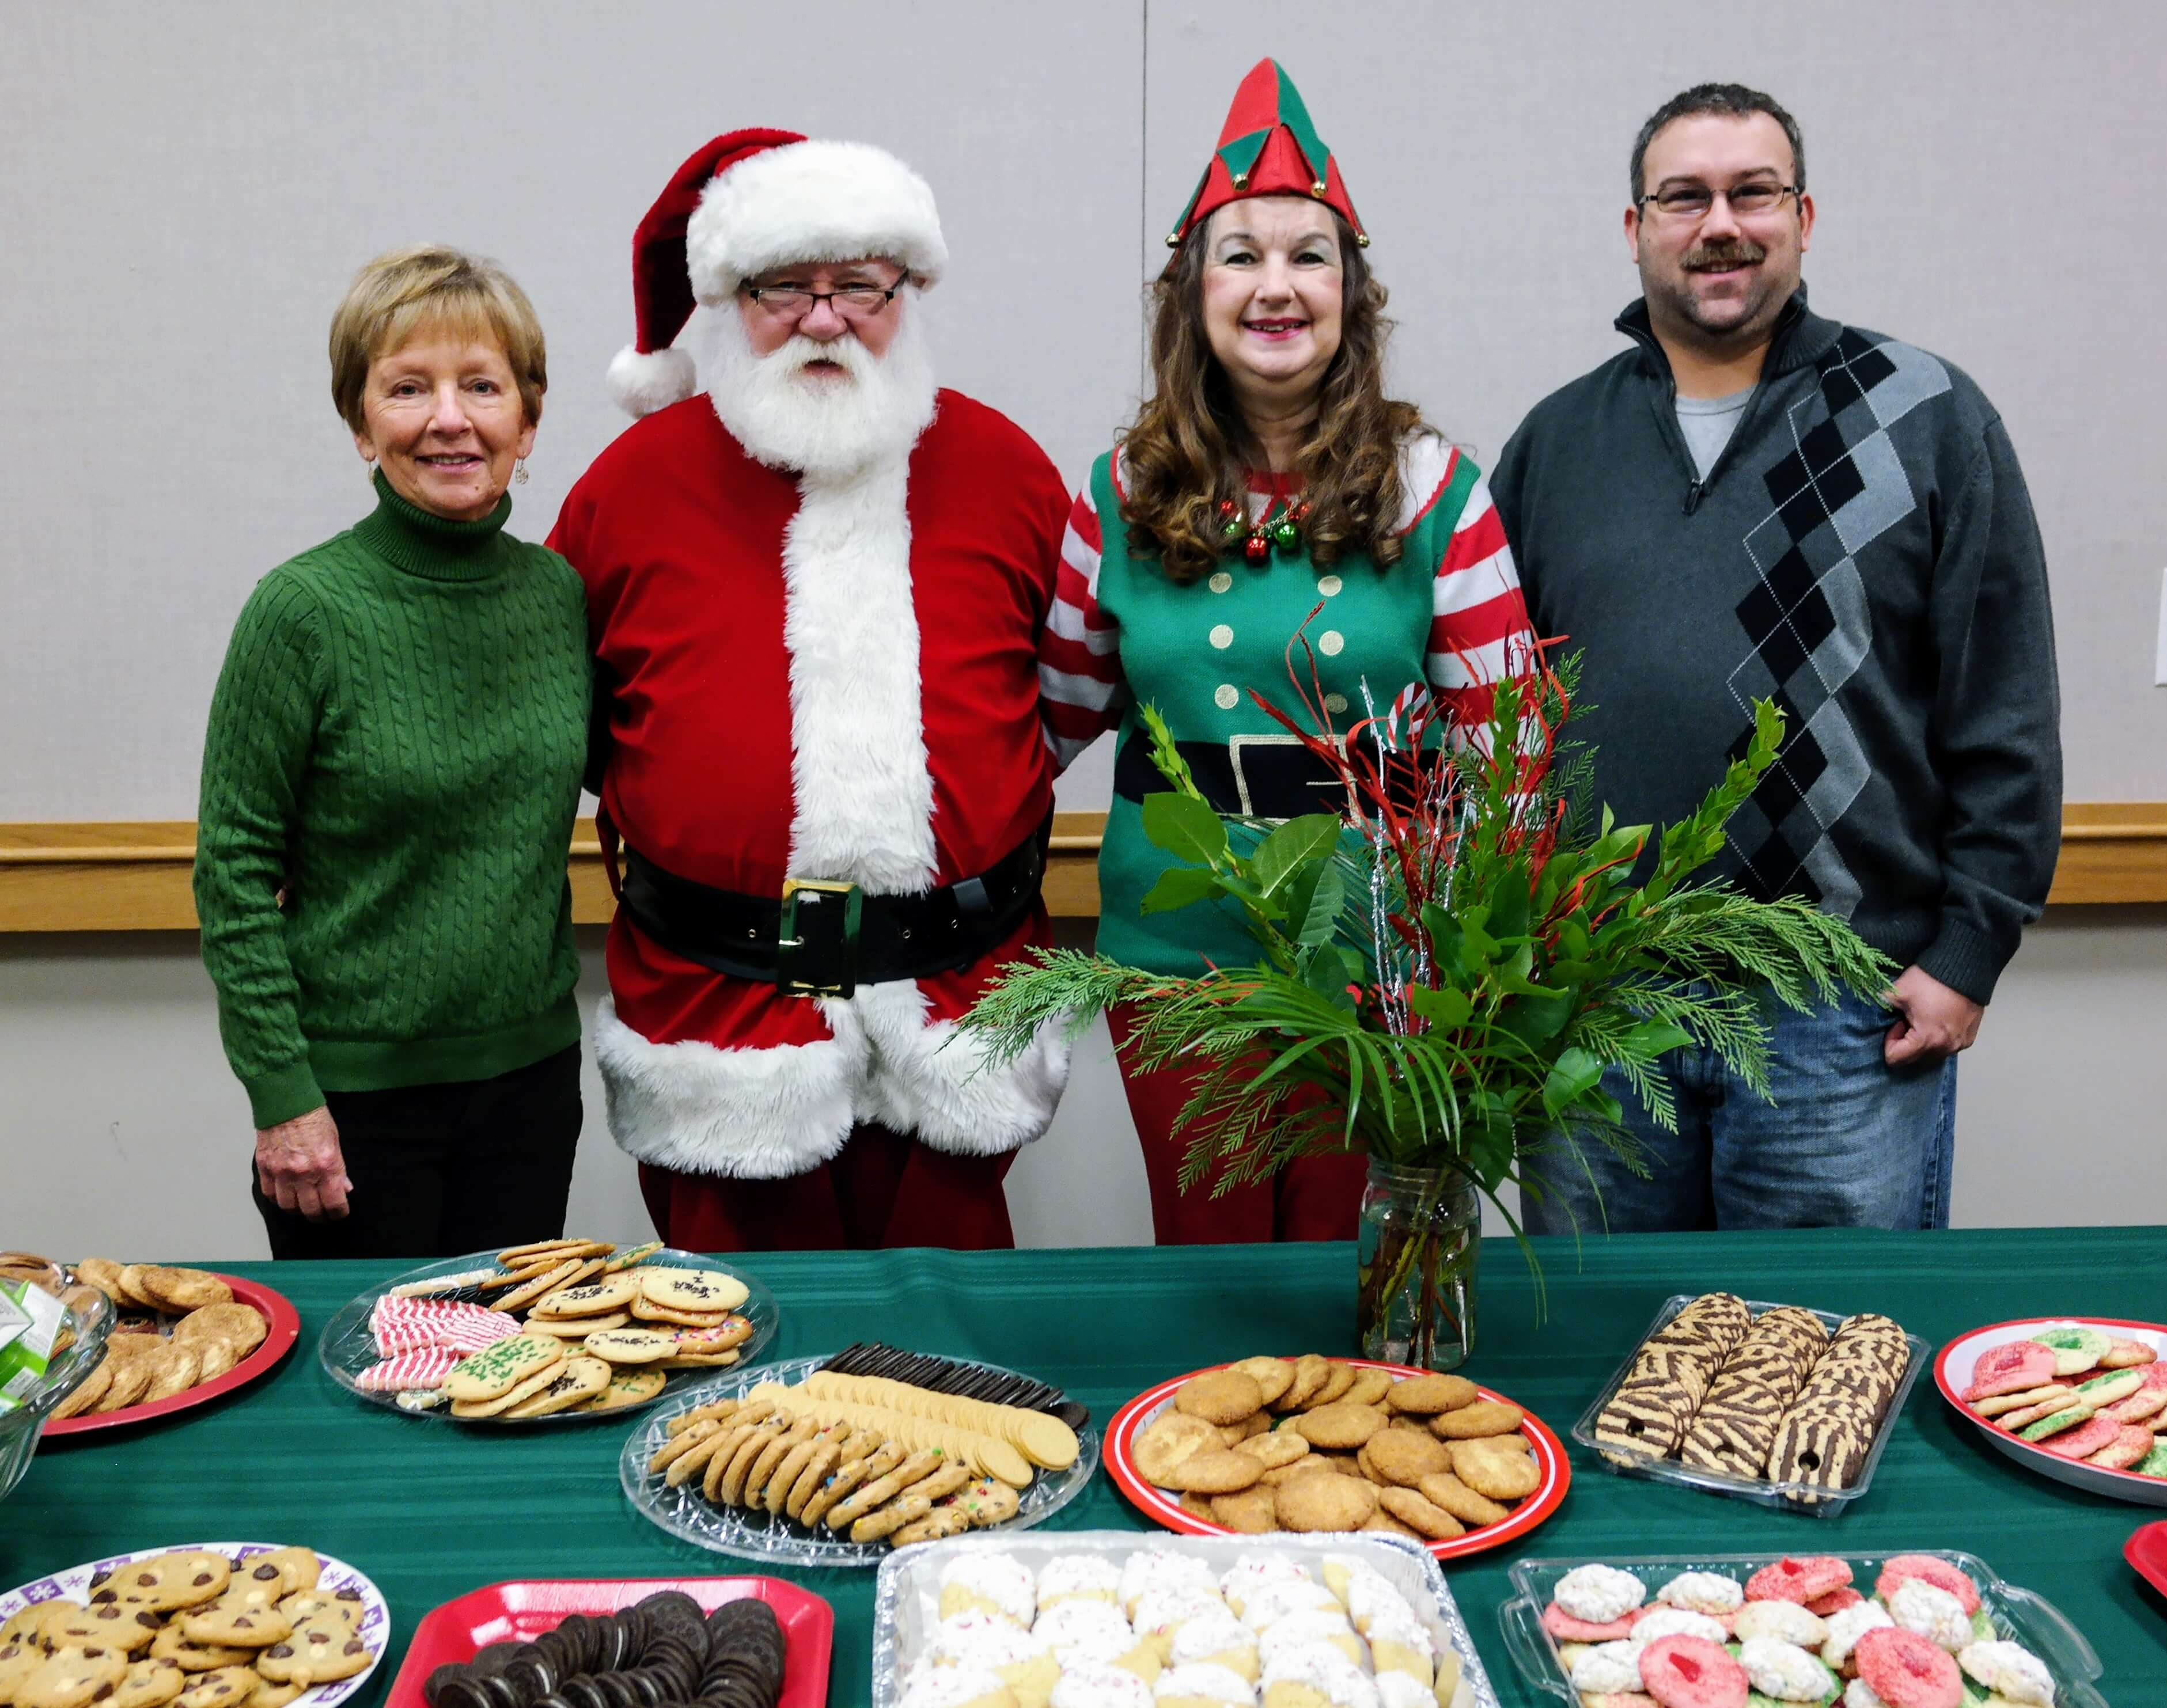 Our great volunteers donated cookies and juice for the children to have after meeting Santa